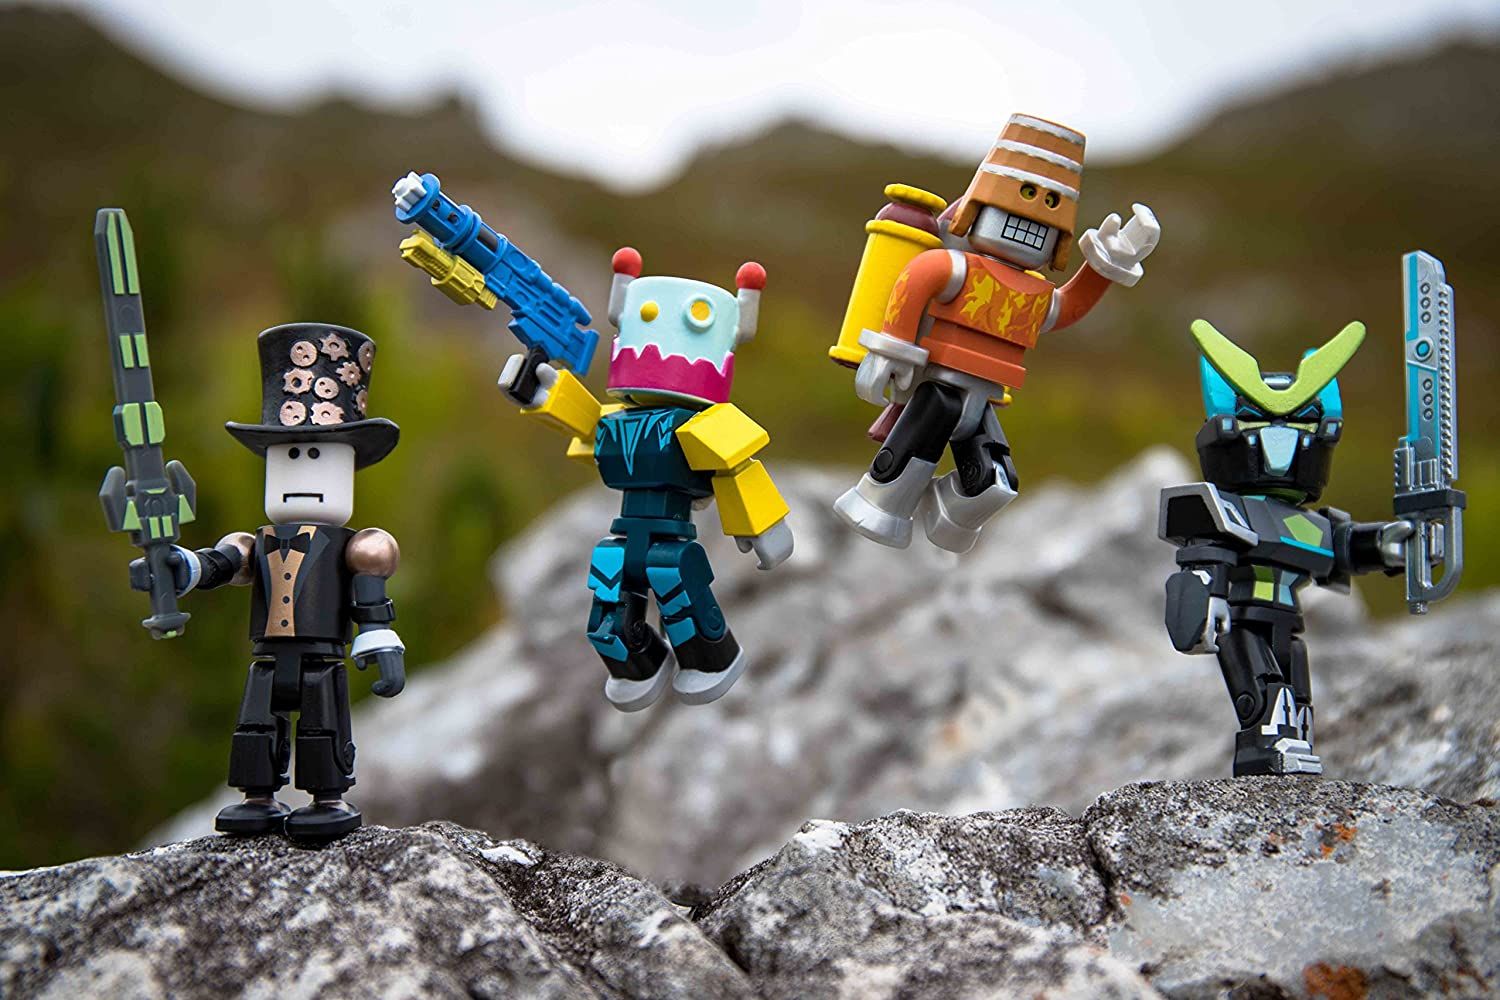 Roblox Robot Riot 4 Figure Pack Mix /& Match Set Action Figure Toys Kids Gifts S2